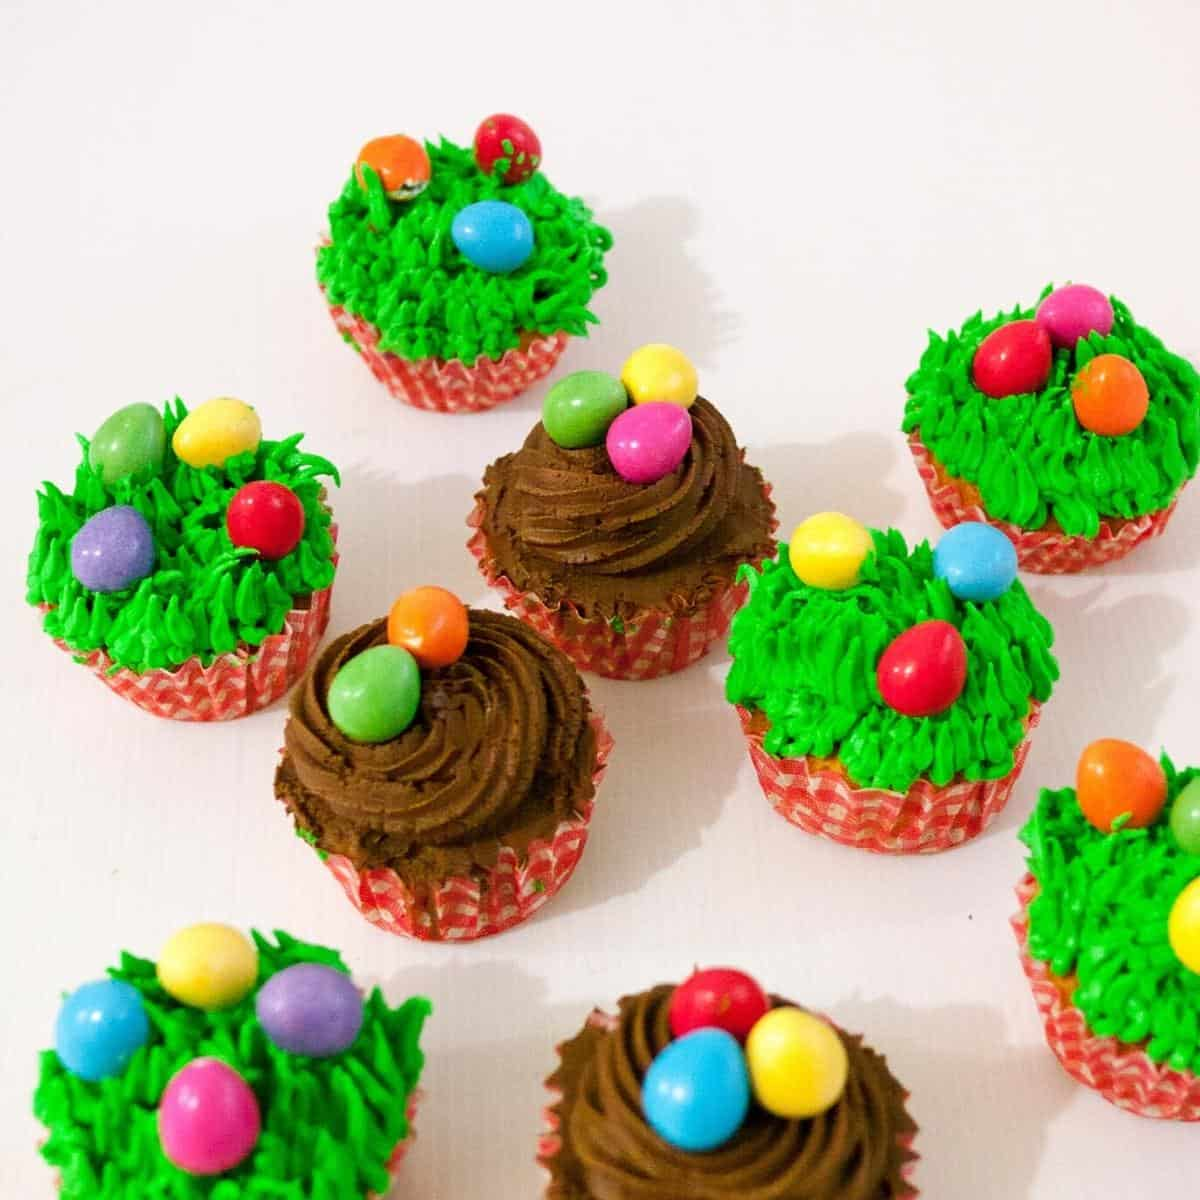 Frosted cupcakes topped with candy eggs